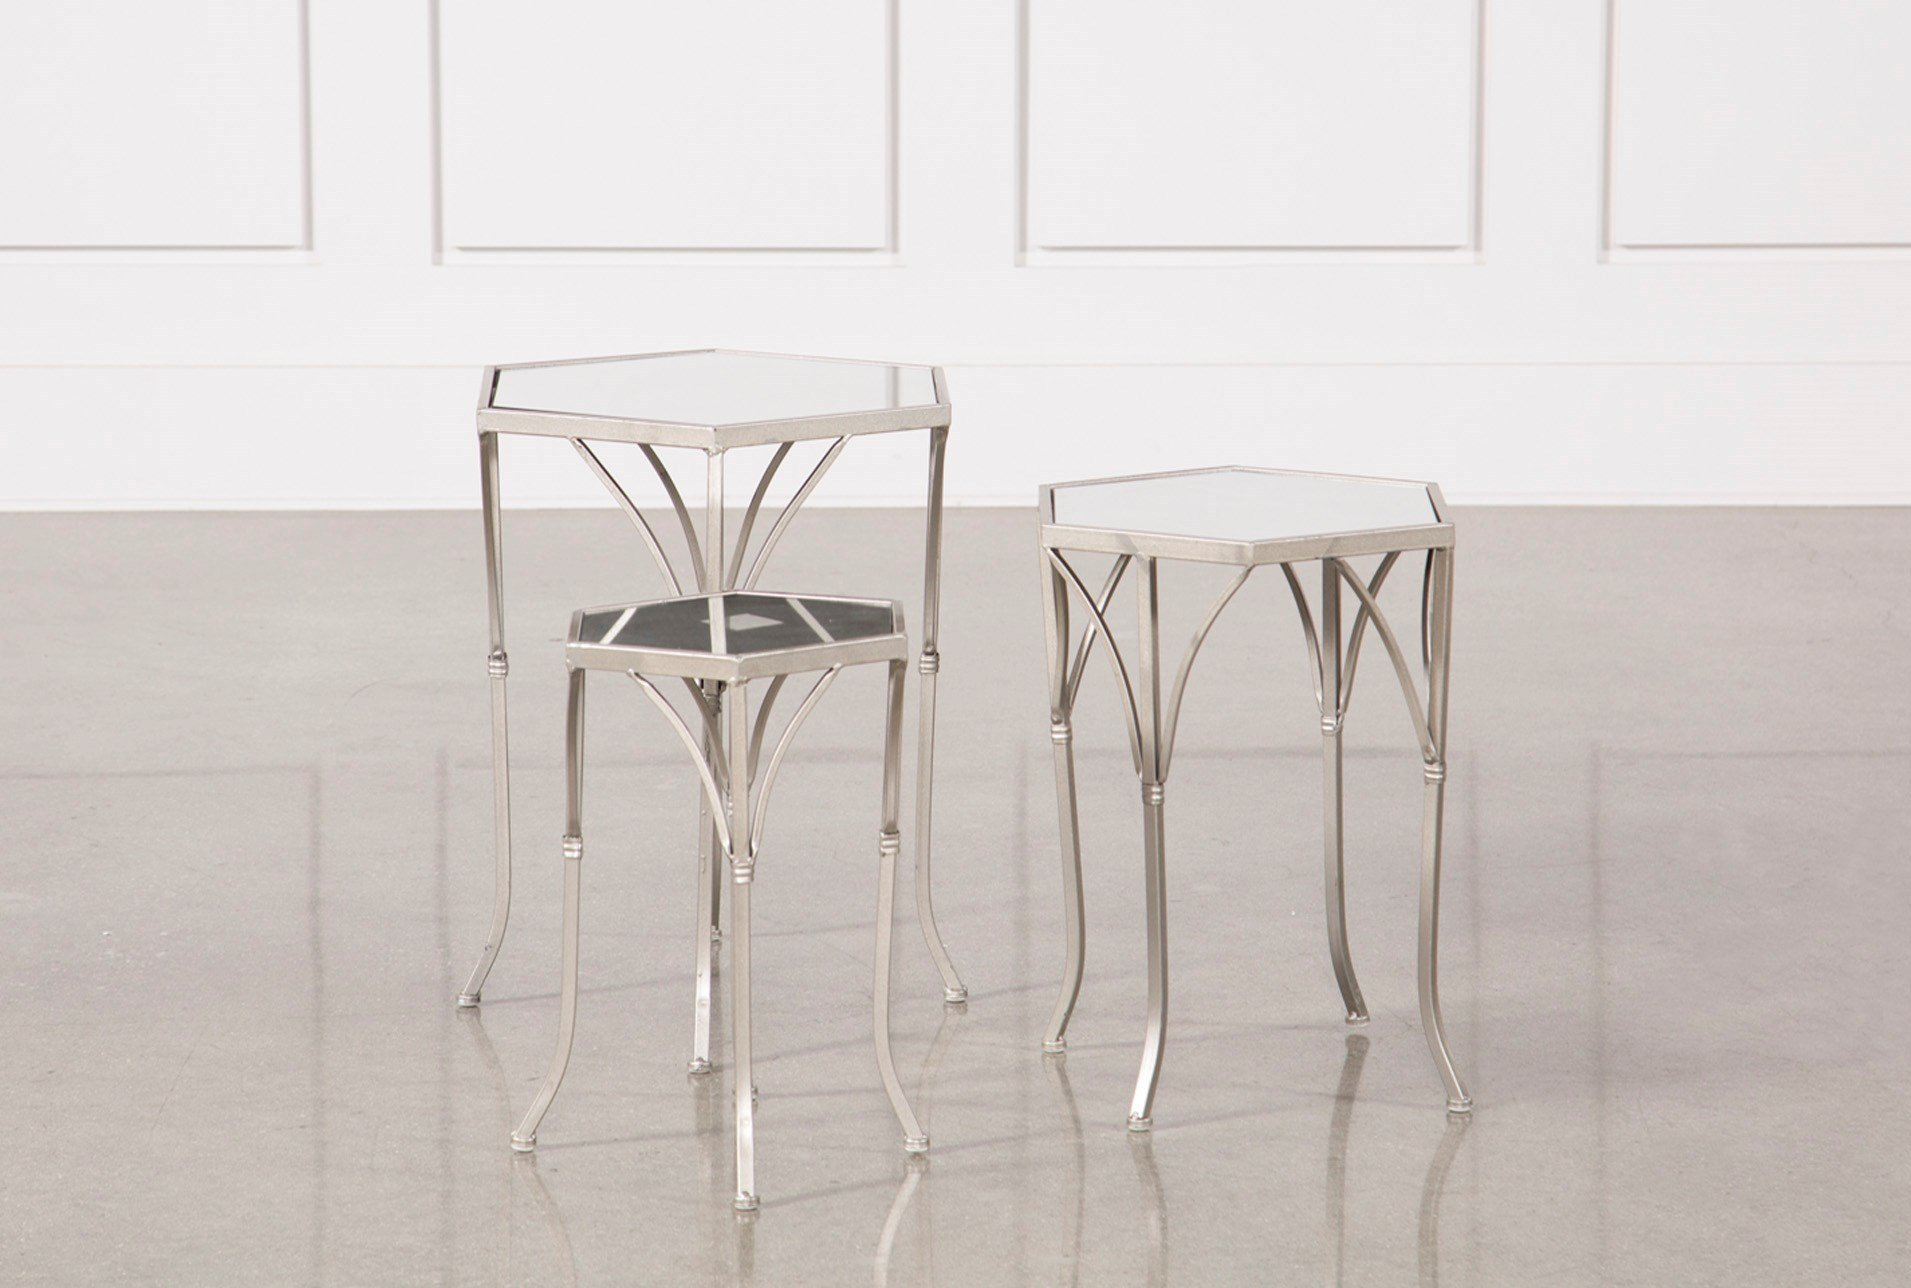 piece mirror accent tables living spaces metal table qty has been successfully your cart contemporary coffee decor bar and pub mango sideboard french braid quilt pattern runner